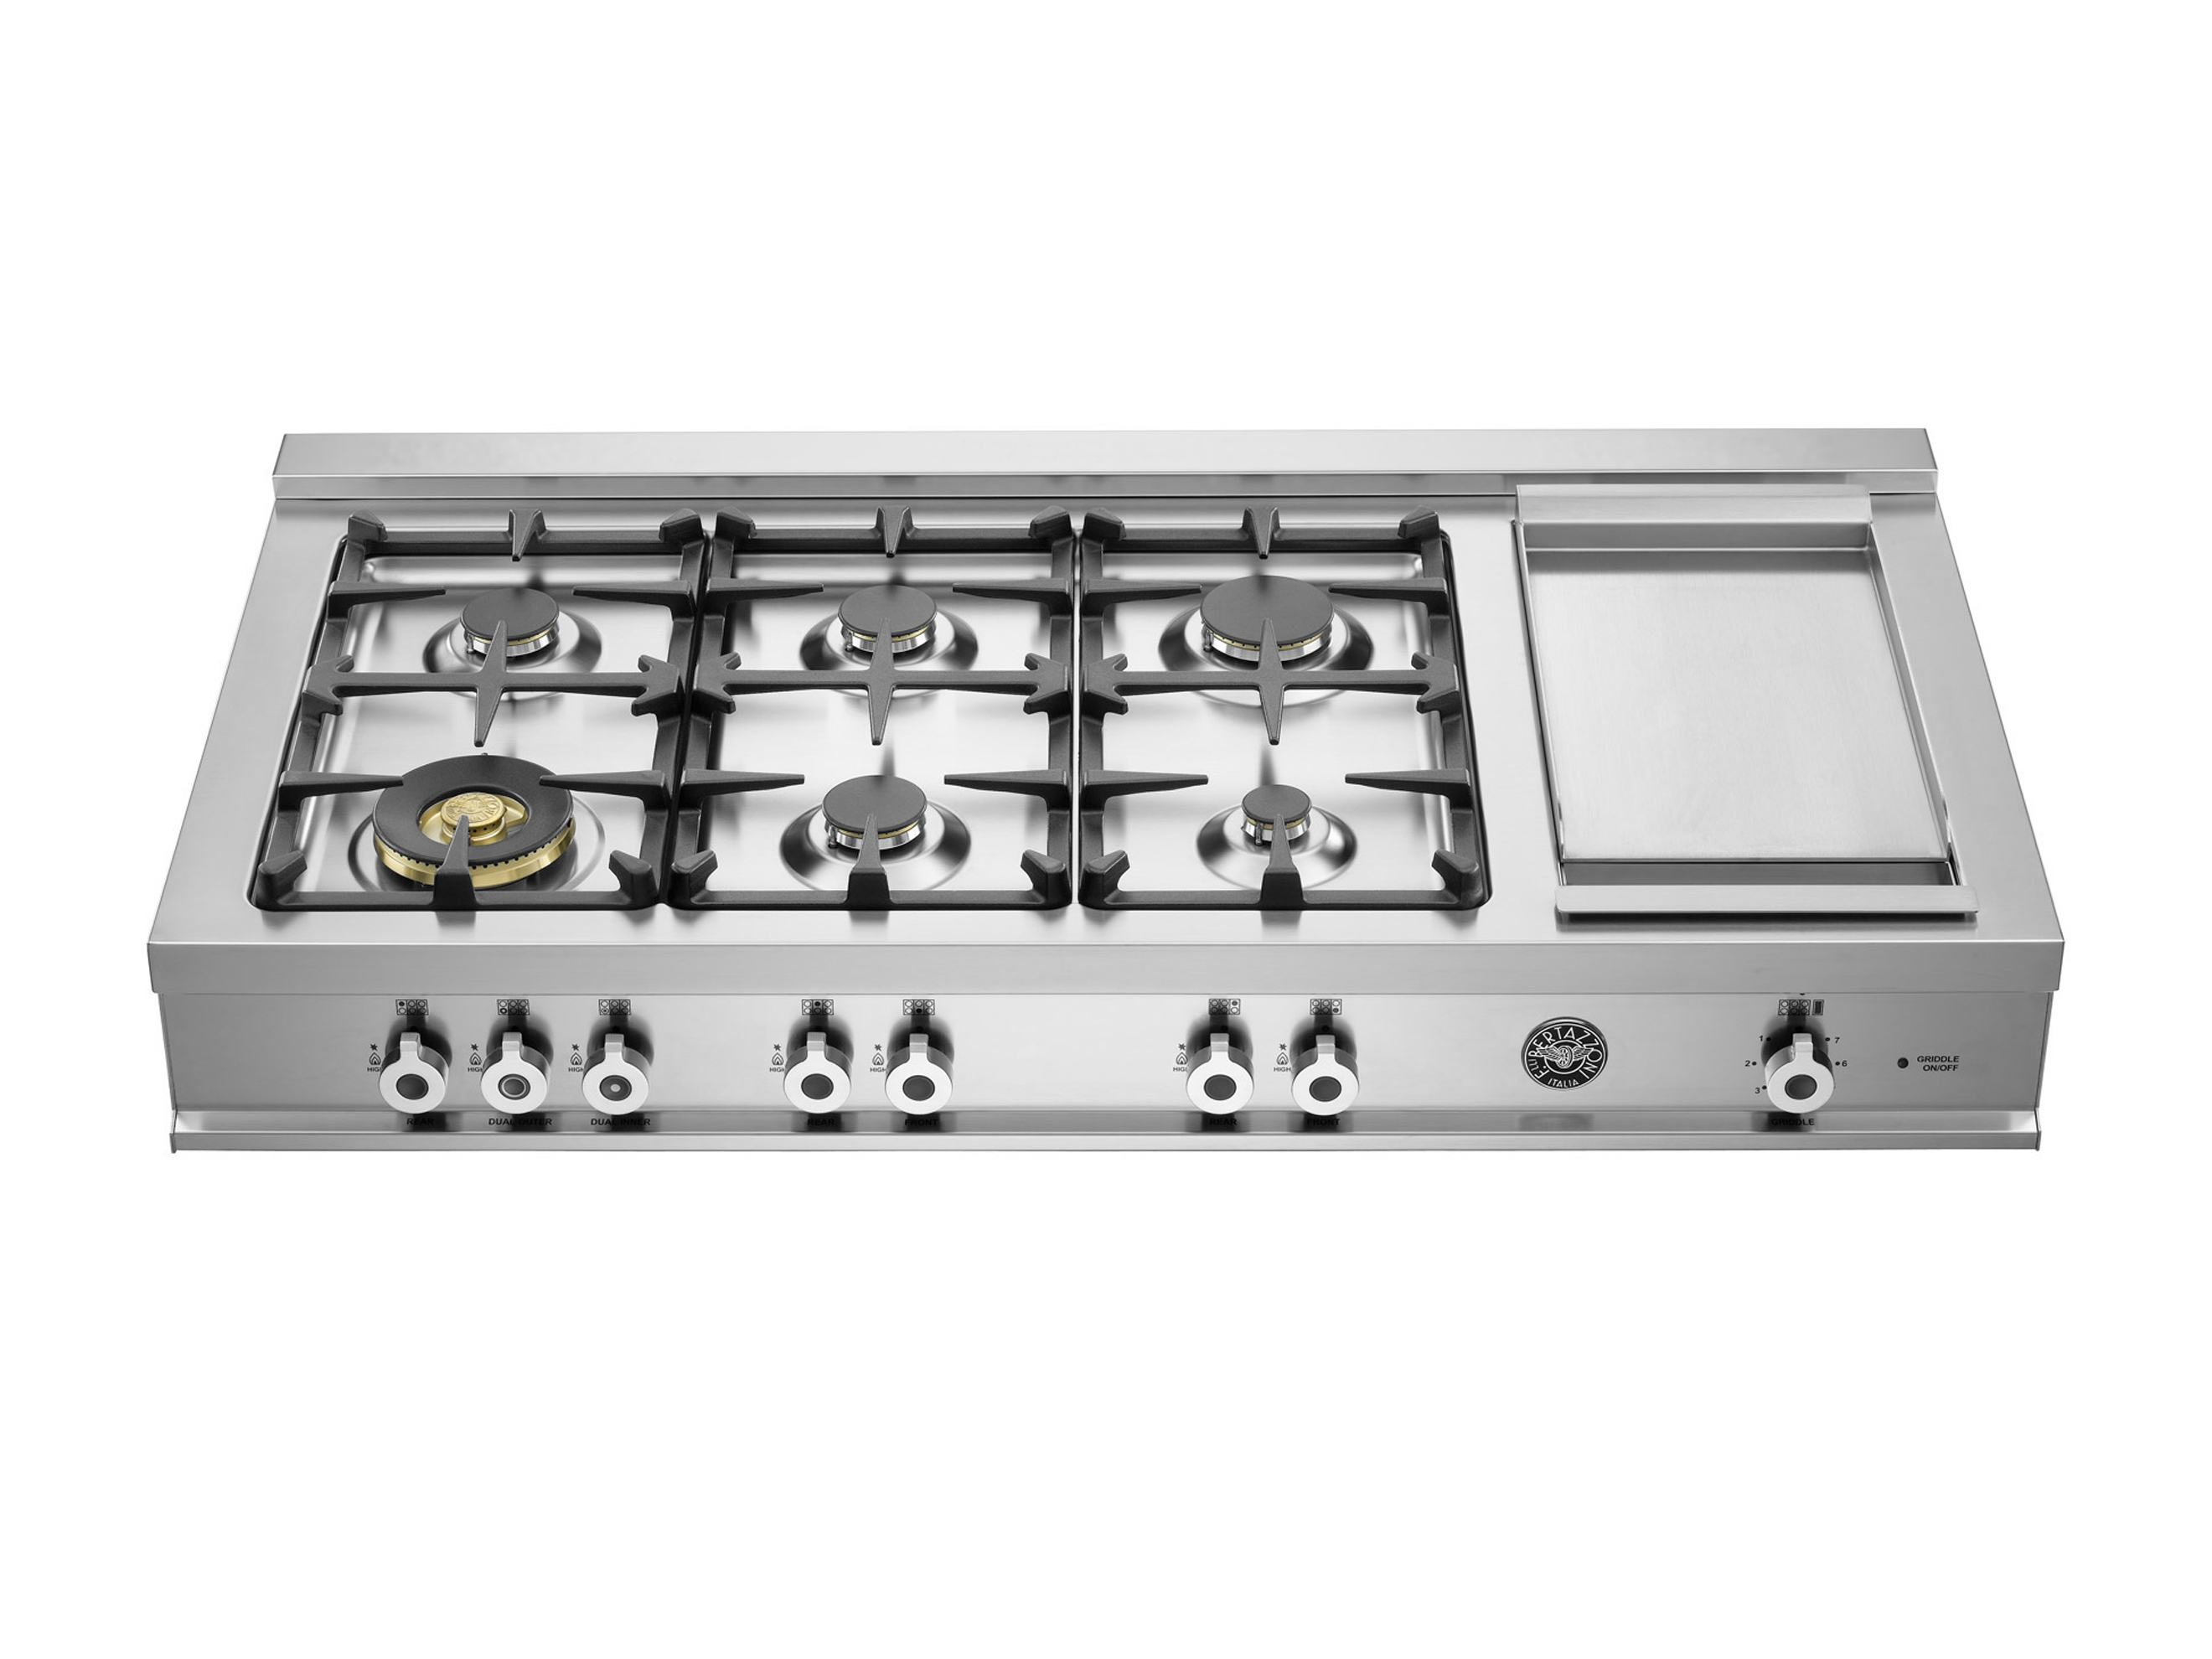 122 cm Range Top 6-burner and Griddle | Bertazzoni - Stainless